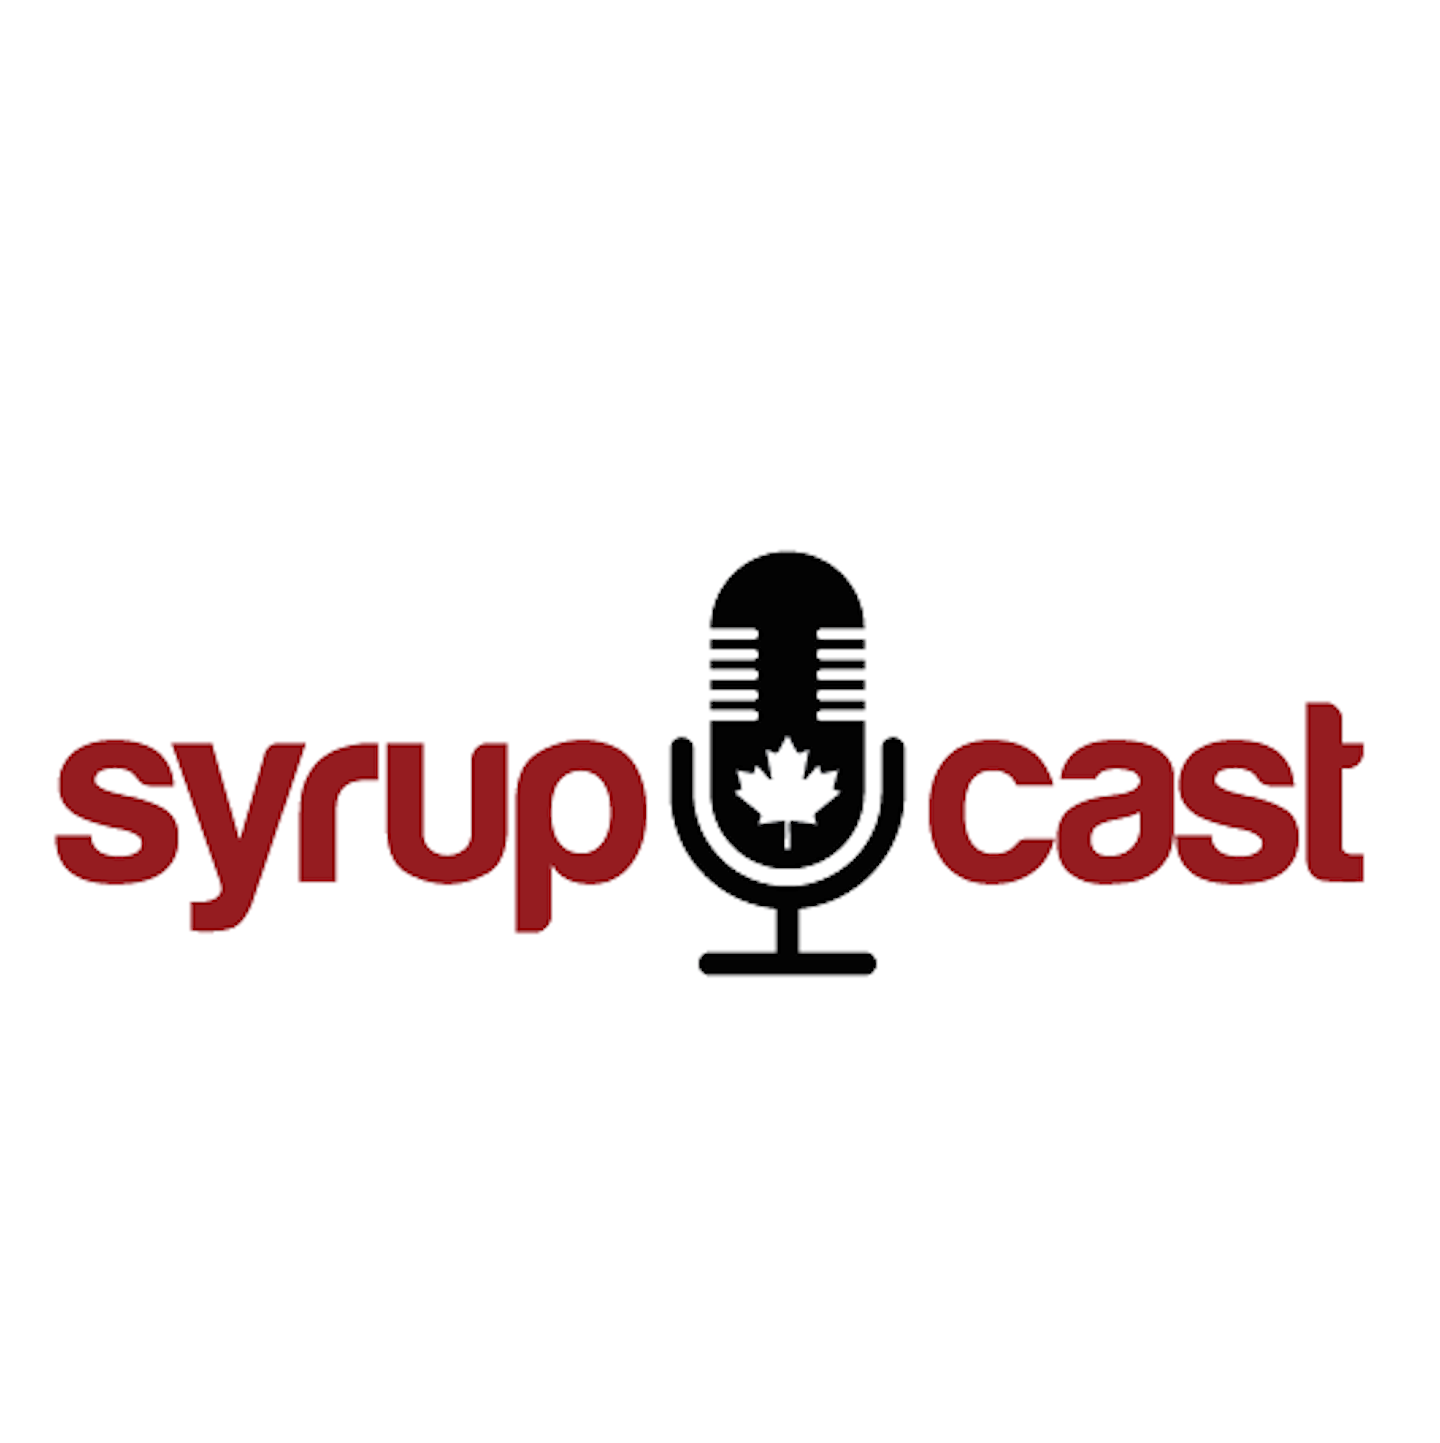 SyrupCast 79: Robot vacuum wars and the future of TV